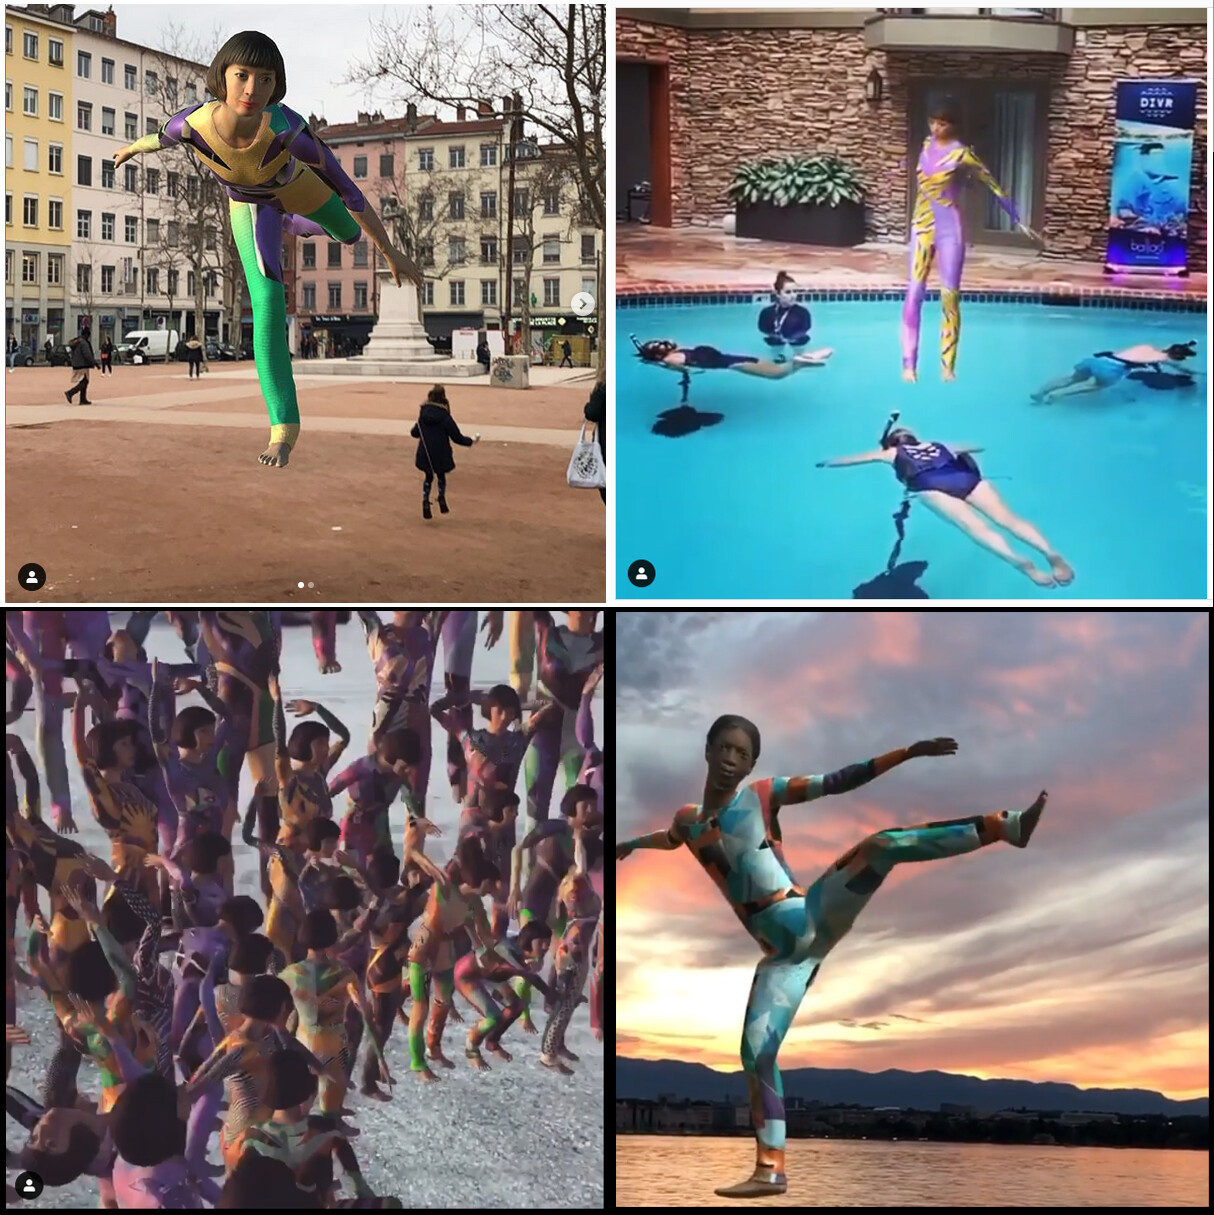 Pics from Instagram #Dancetrail